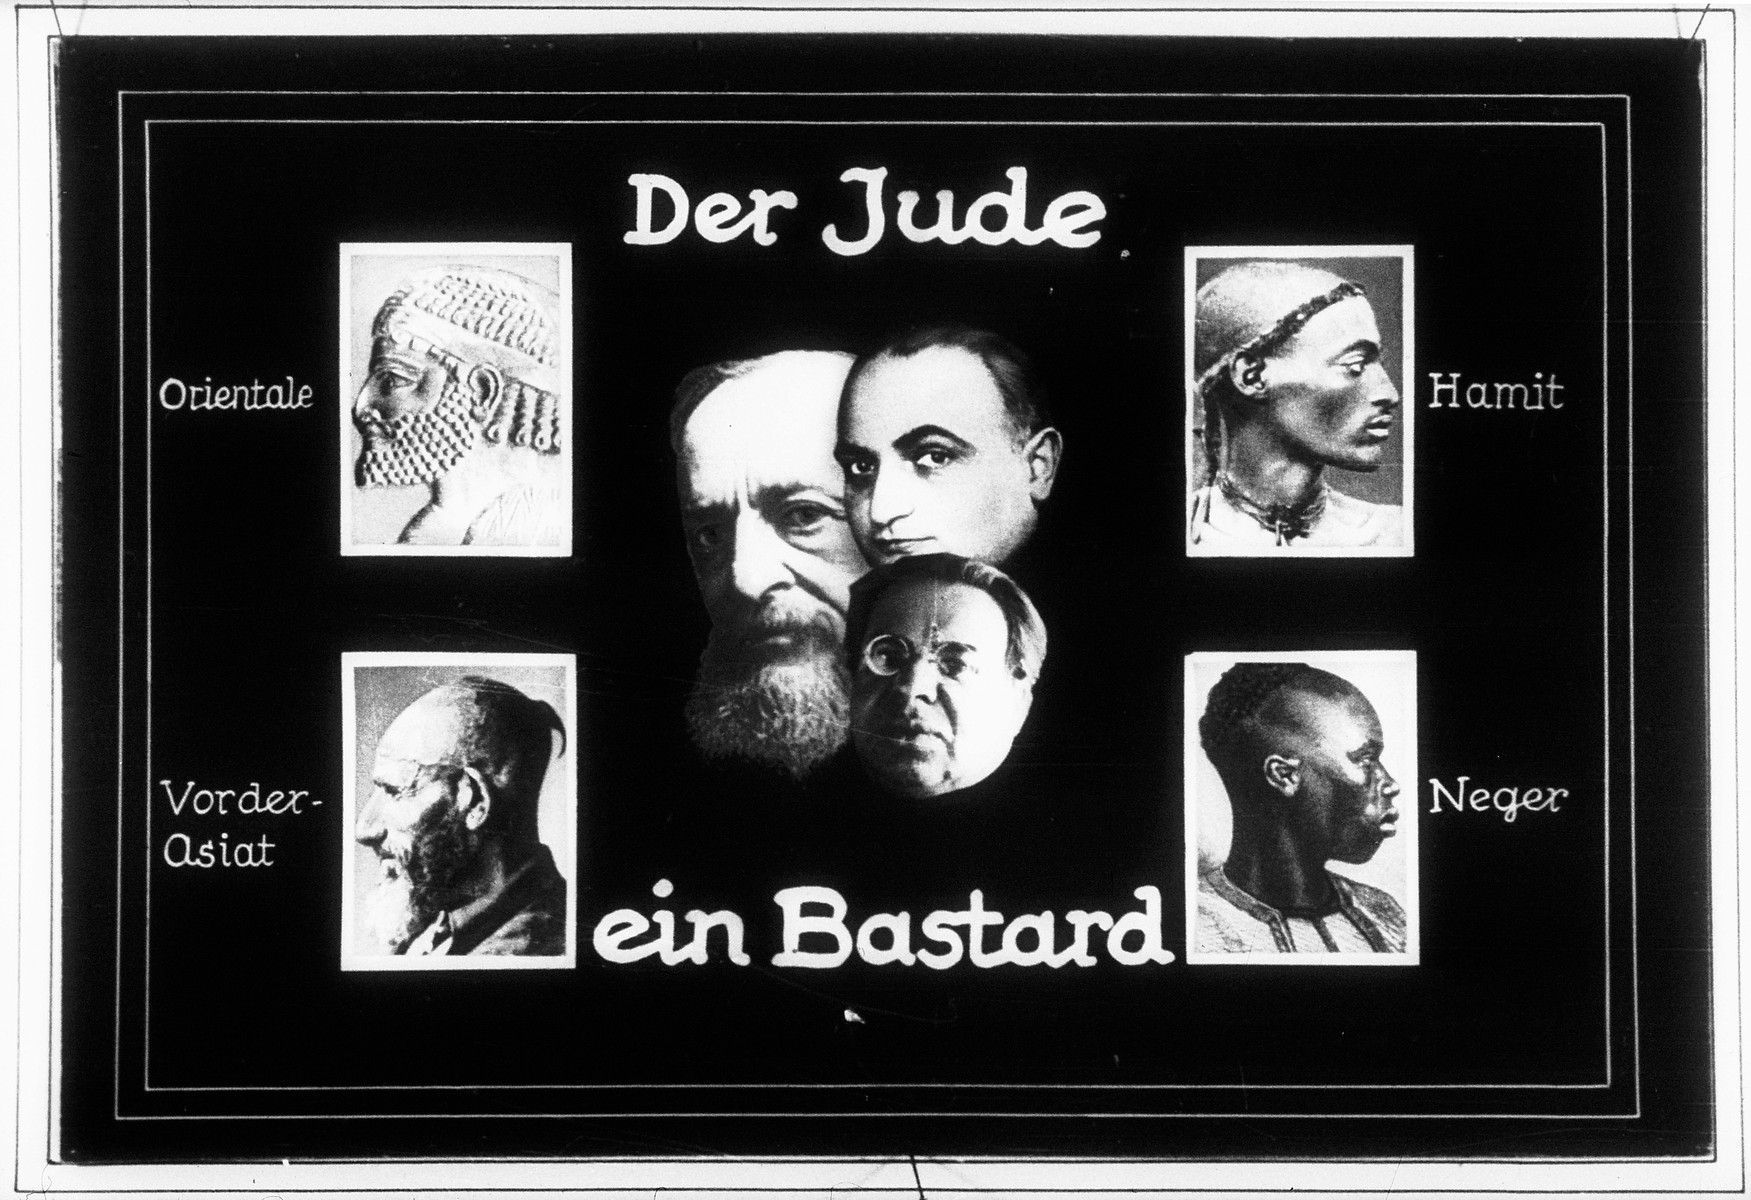 """Propaganda slide entitled """"The Jew a Bastard,"""" illustrating different racial types, and characterizing Jews as a """"bastard"""" race."""